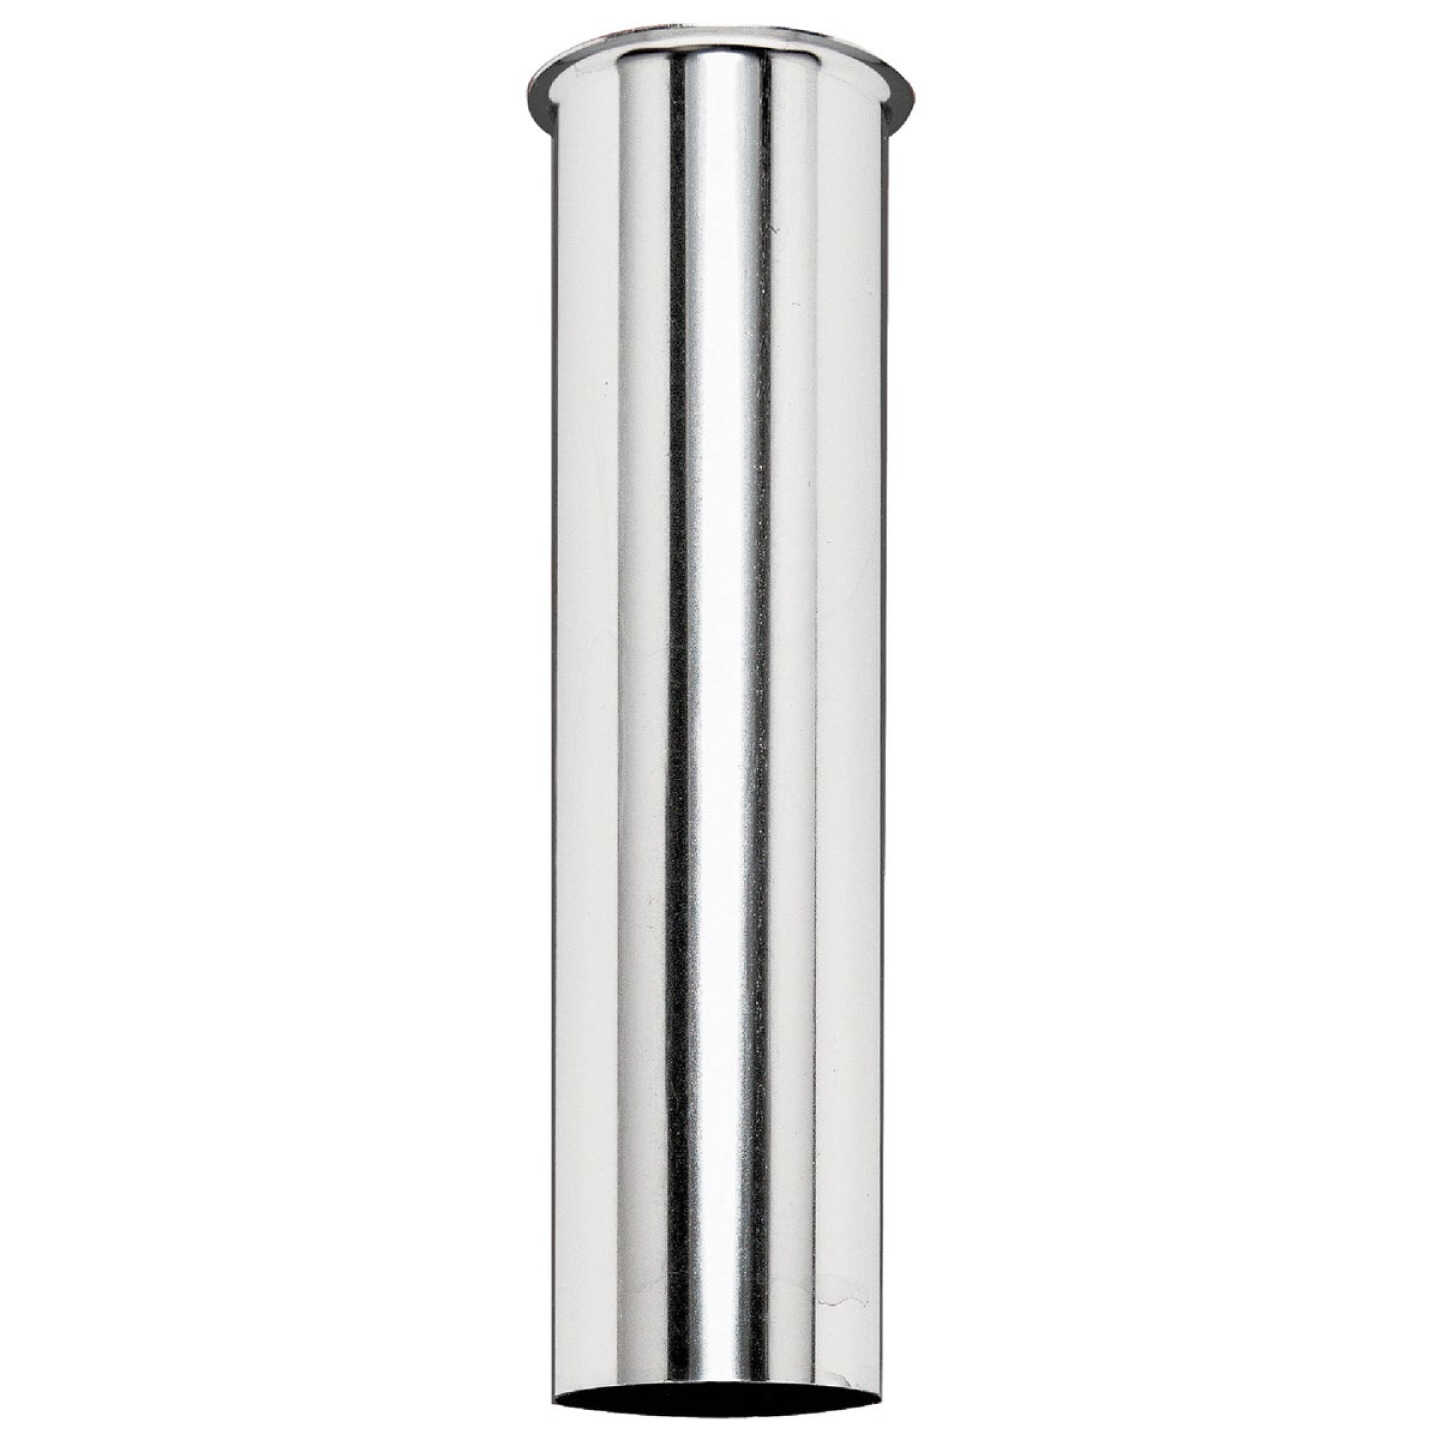 Do it 1-1/2 In. x 12 In. Chrome Plated Tailpiece Image 1